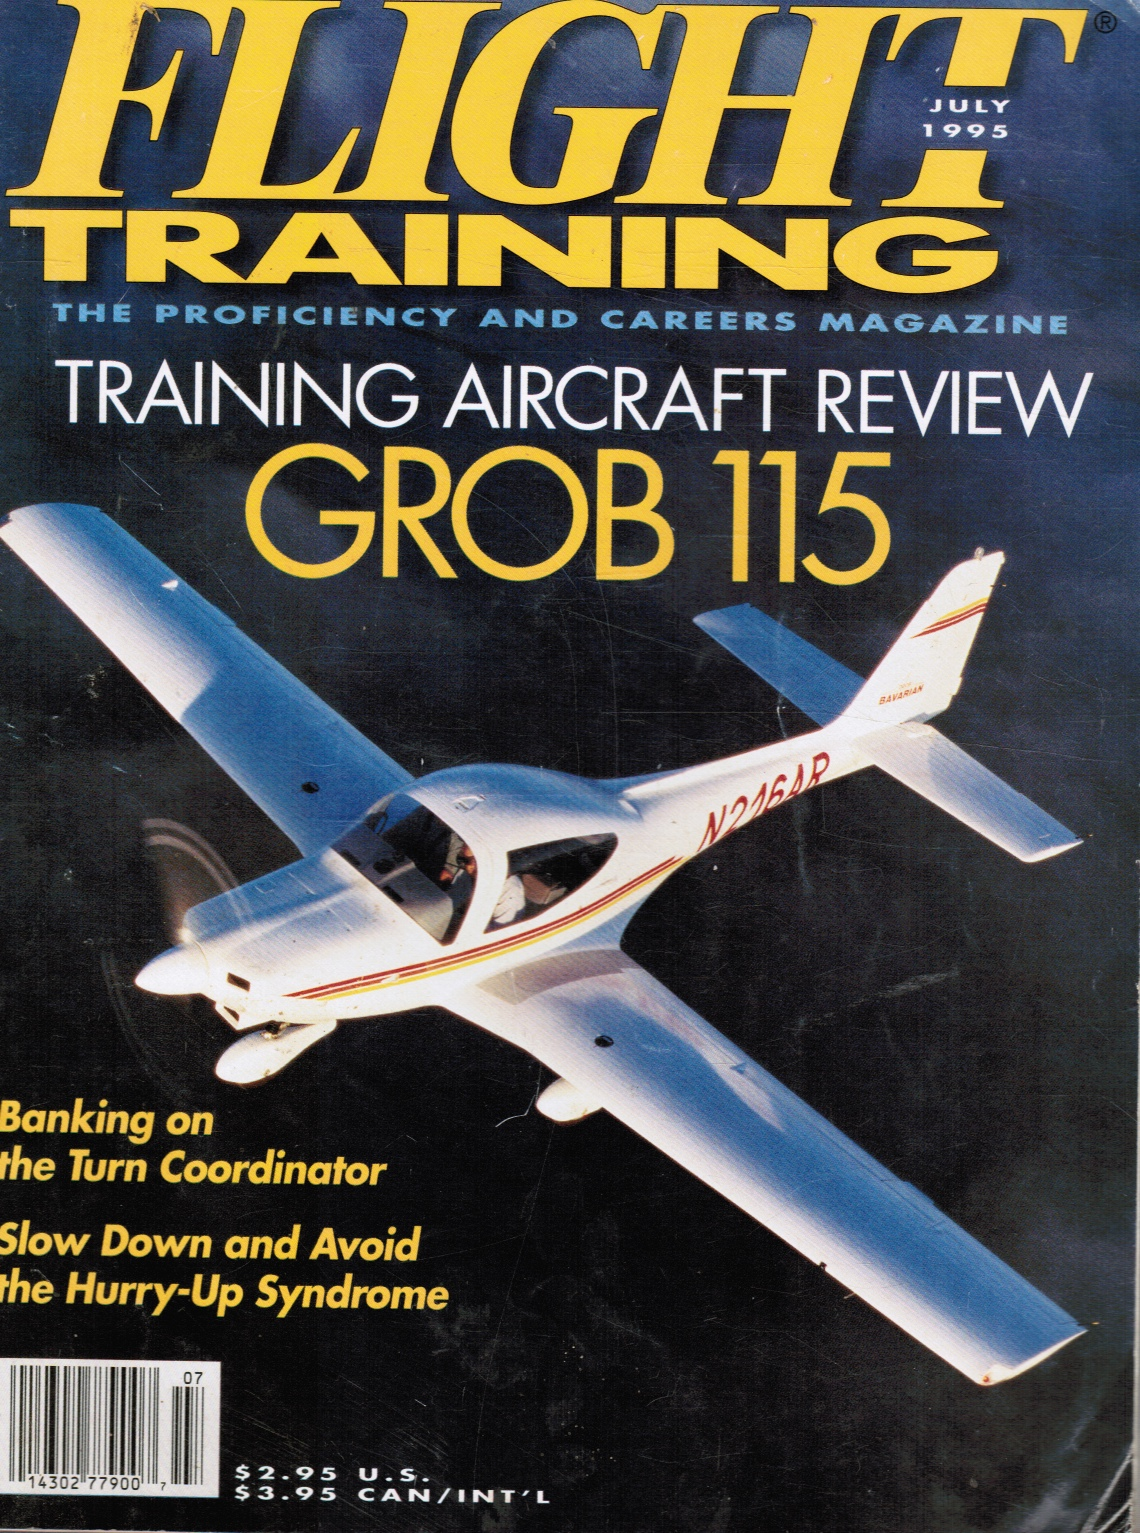 Image for Flight Training: the Proficiency and Careers Magazine - July 1995